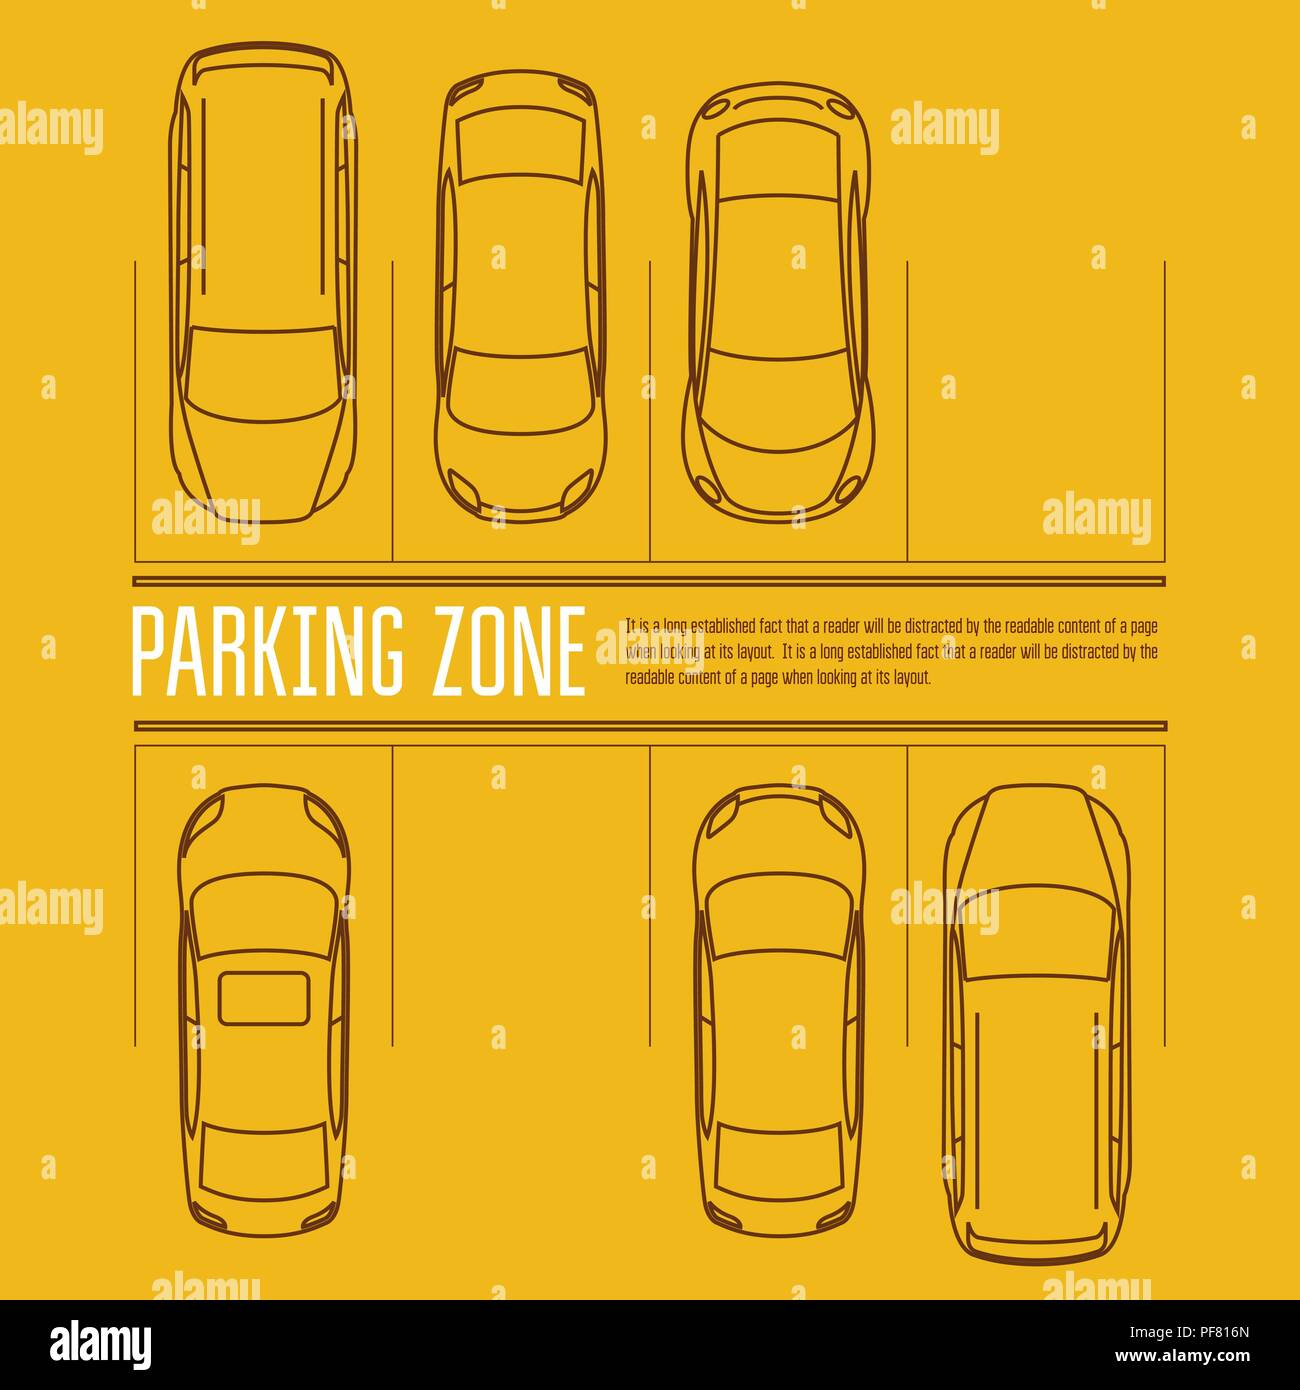 Car parking lot - top view of cars in park zone - Stock Vector